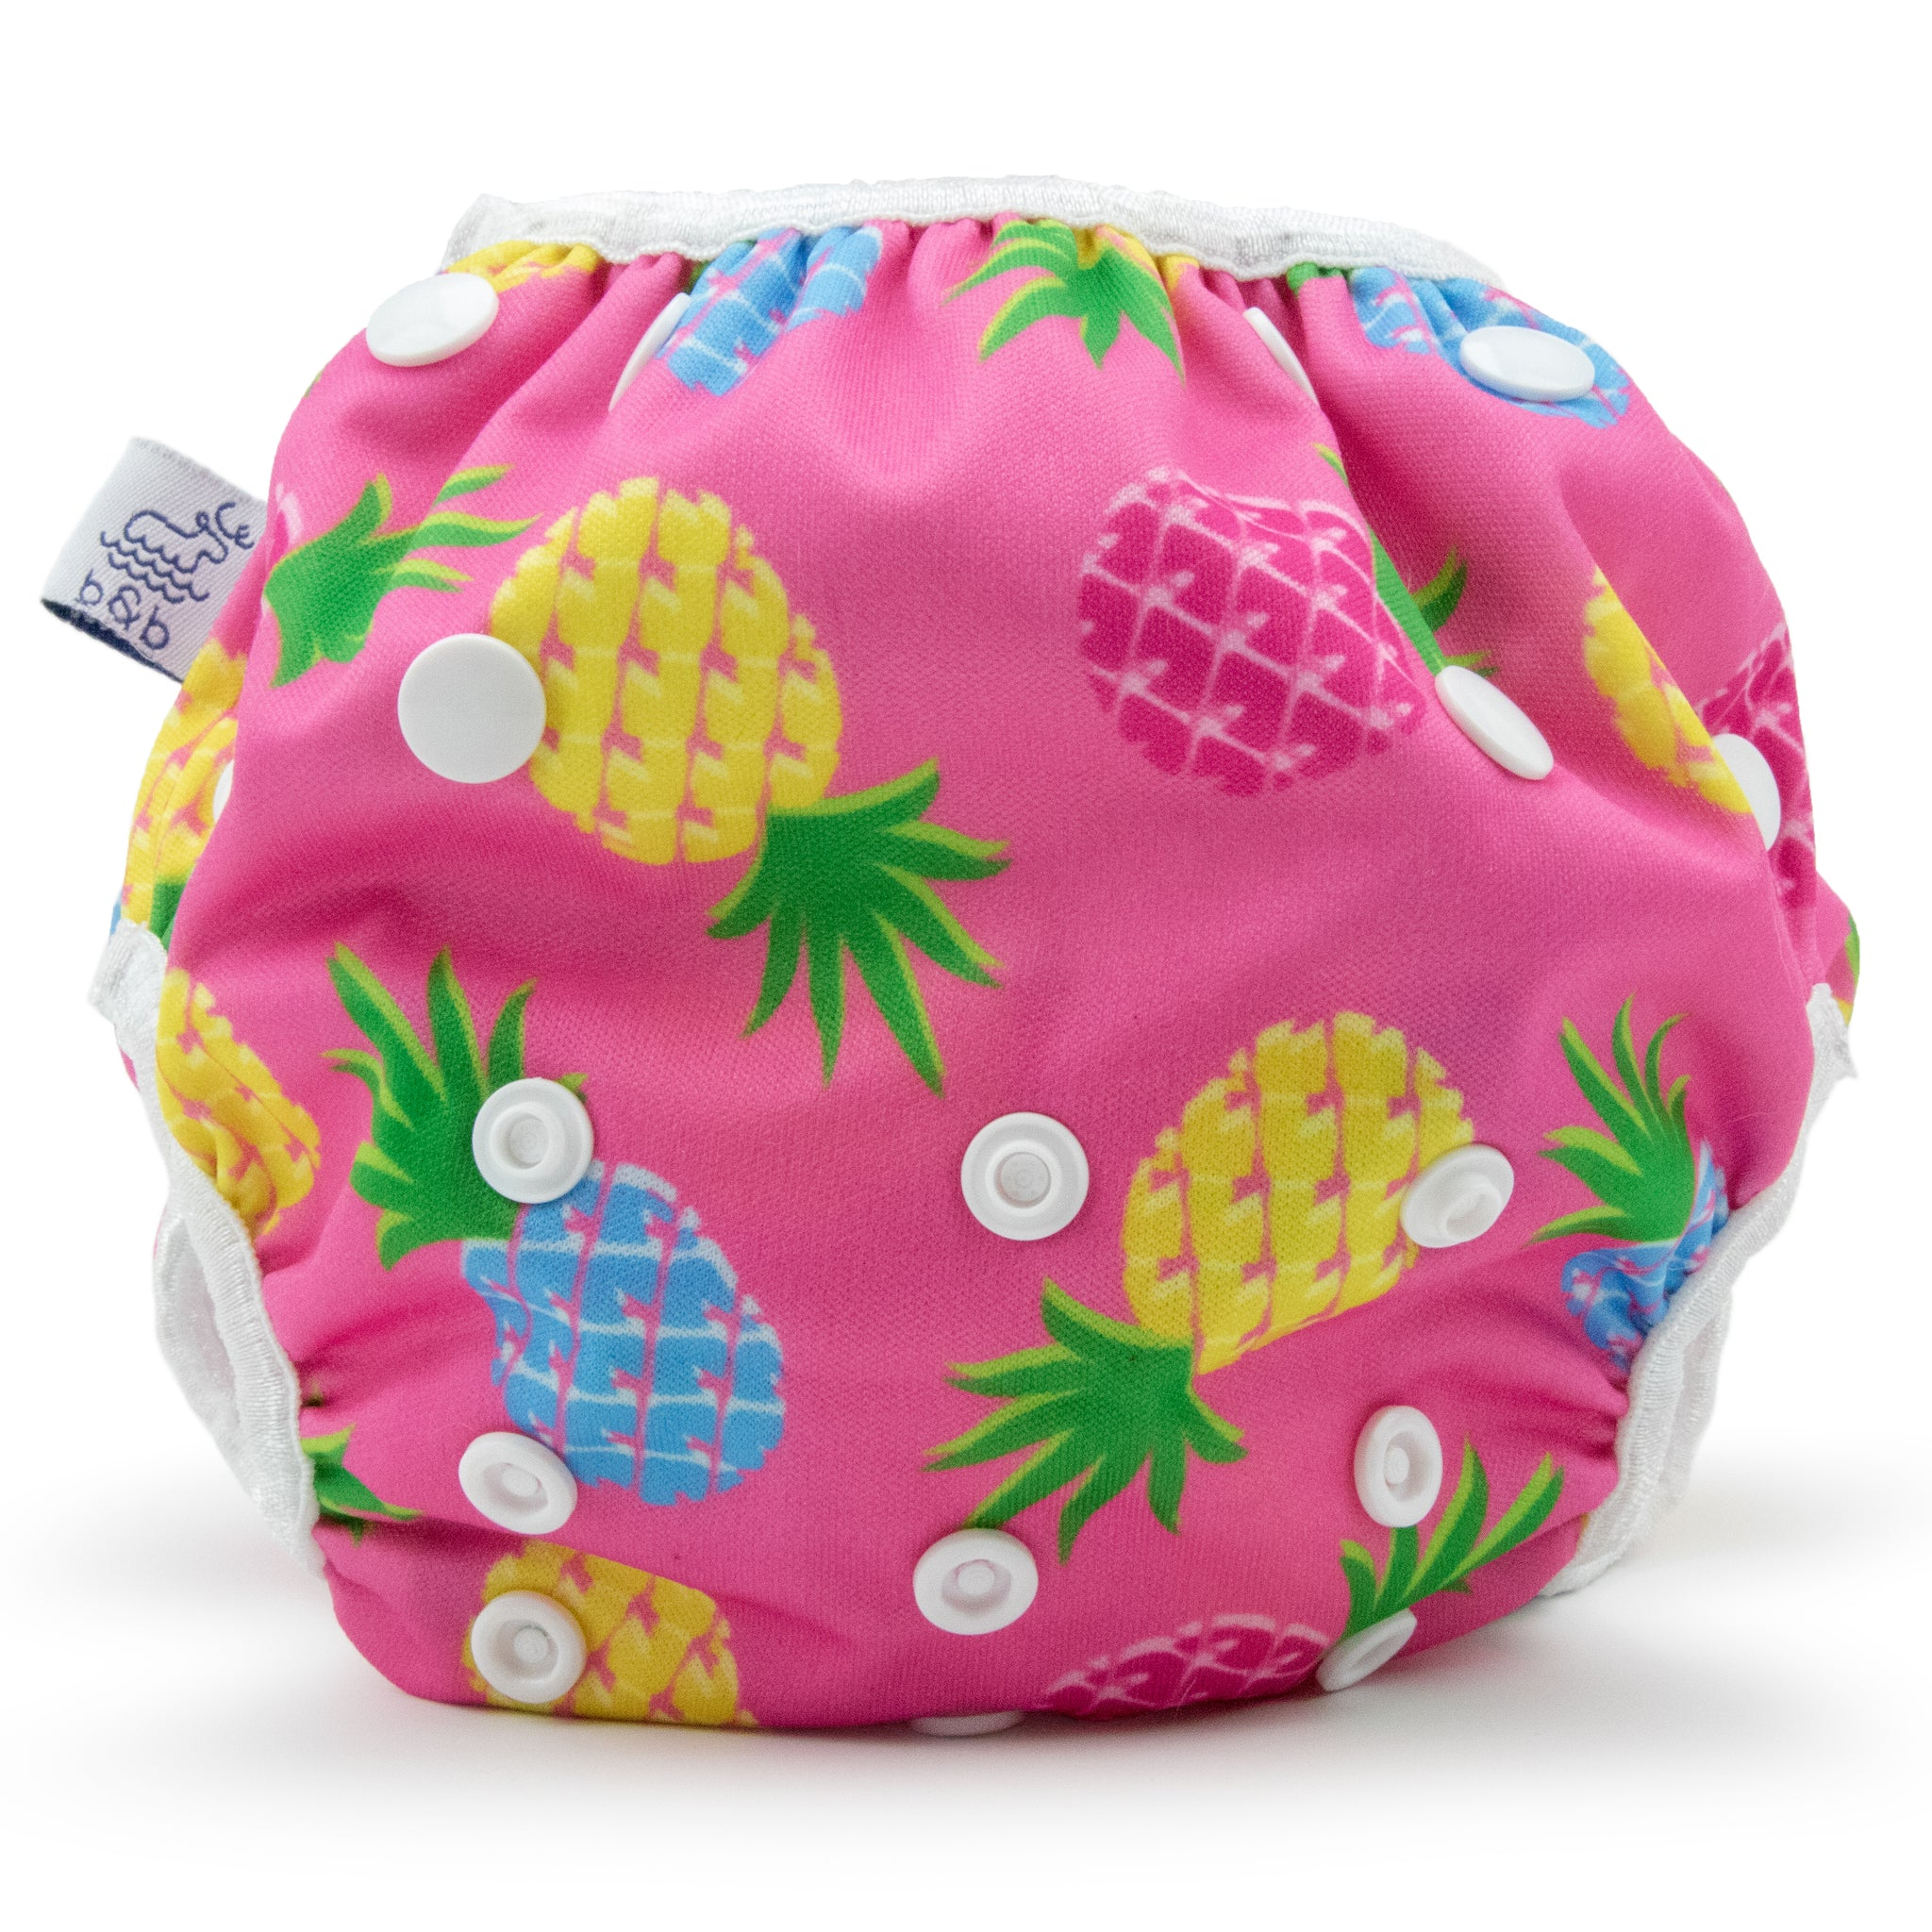 Swim Diapers for Toddlers